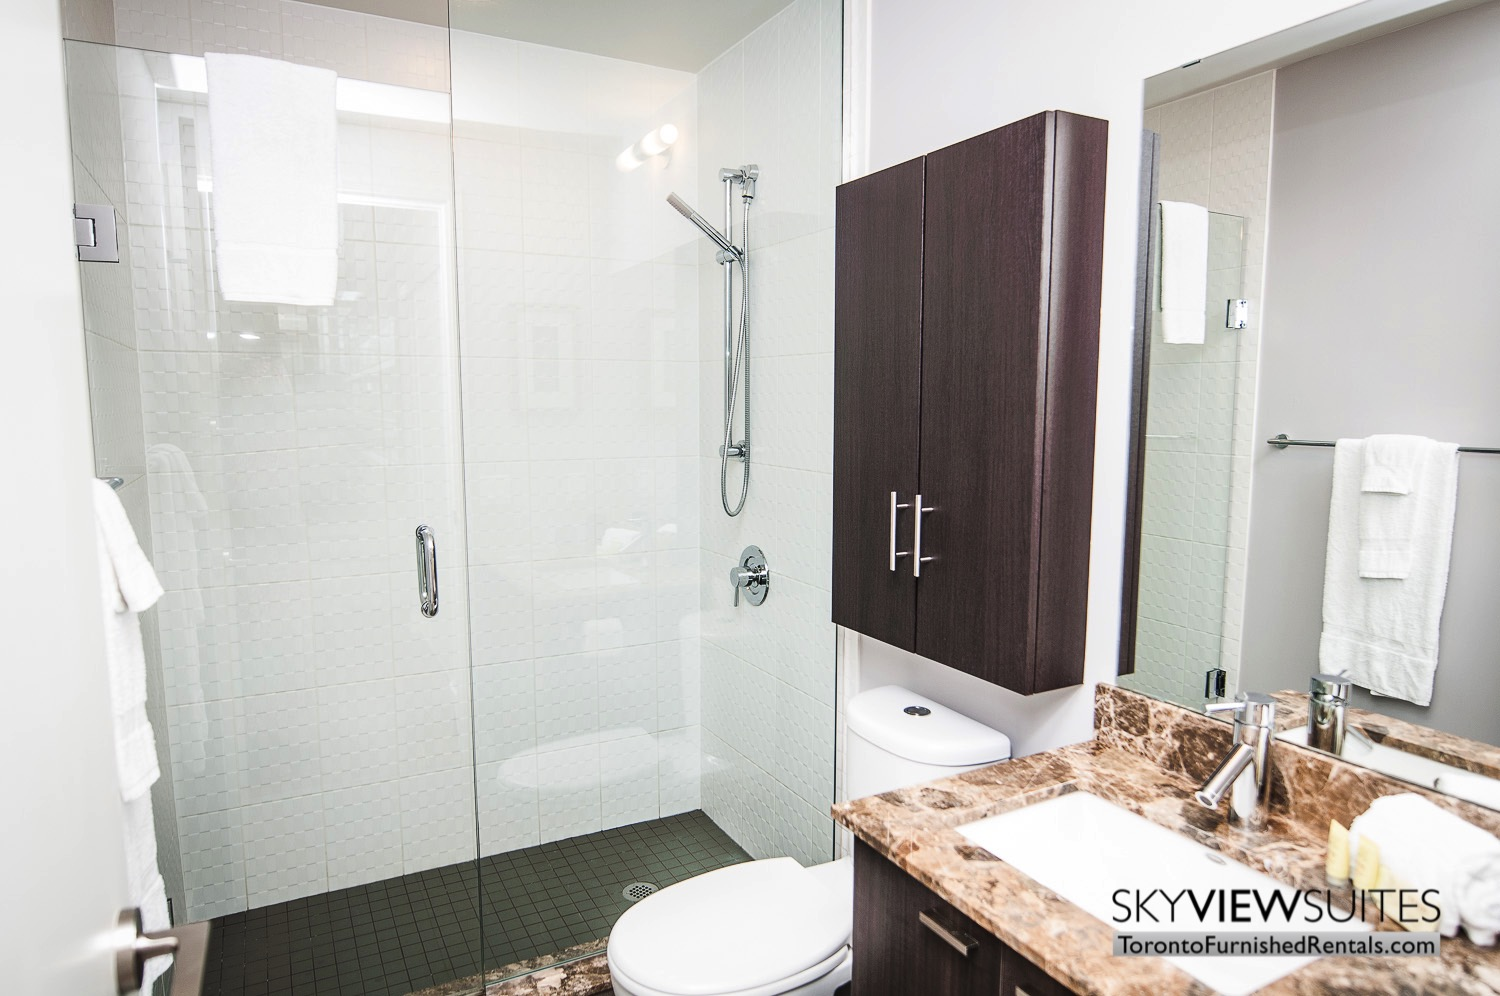 King west corporate rentals toronto bathroom and shower